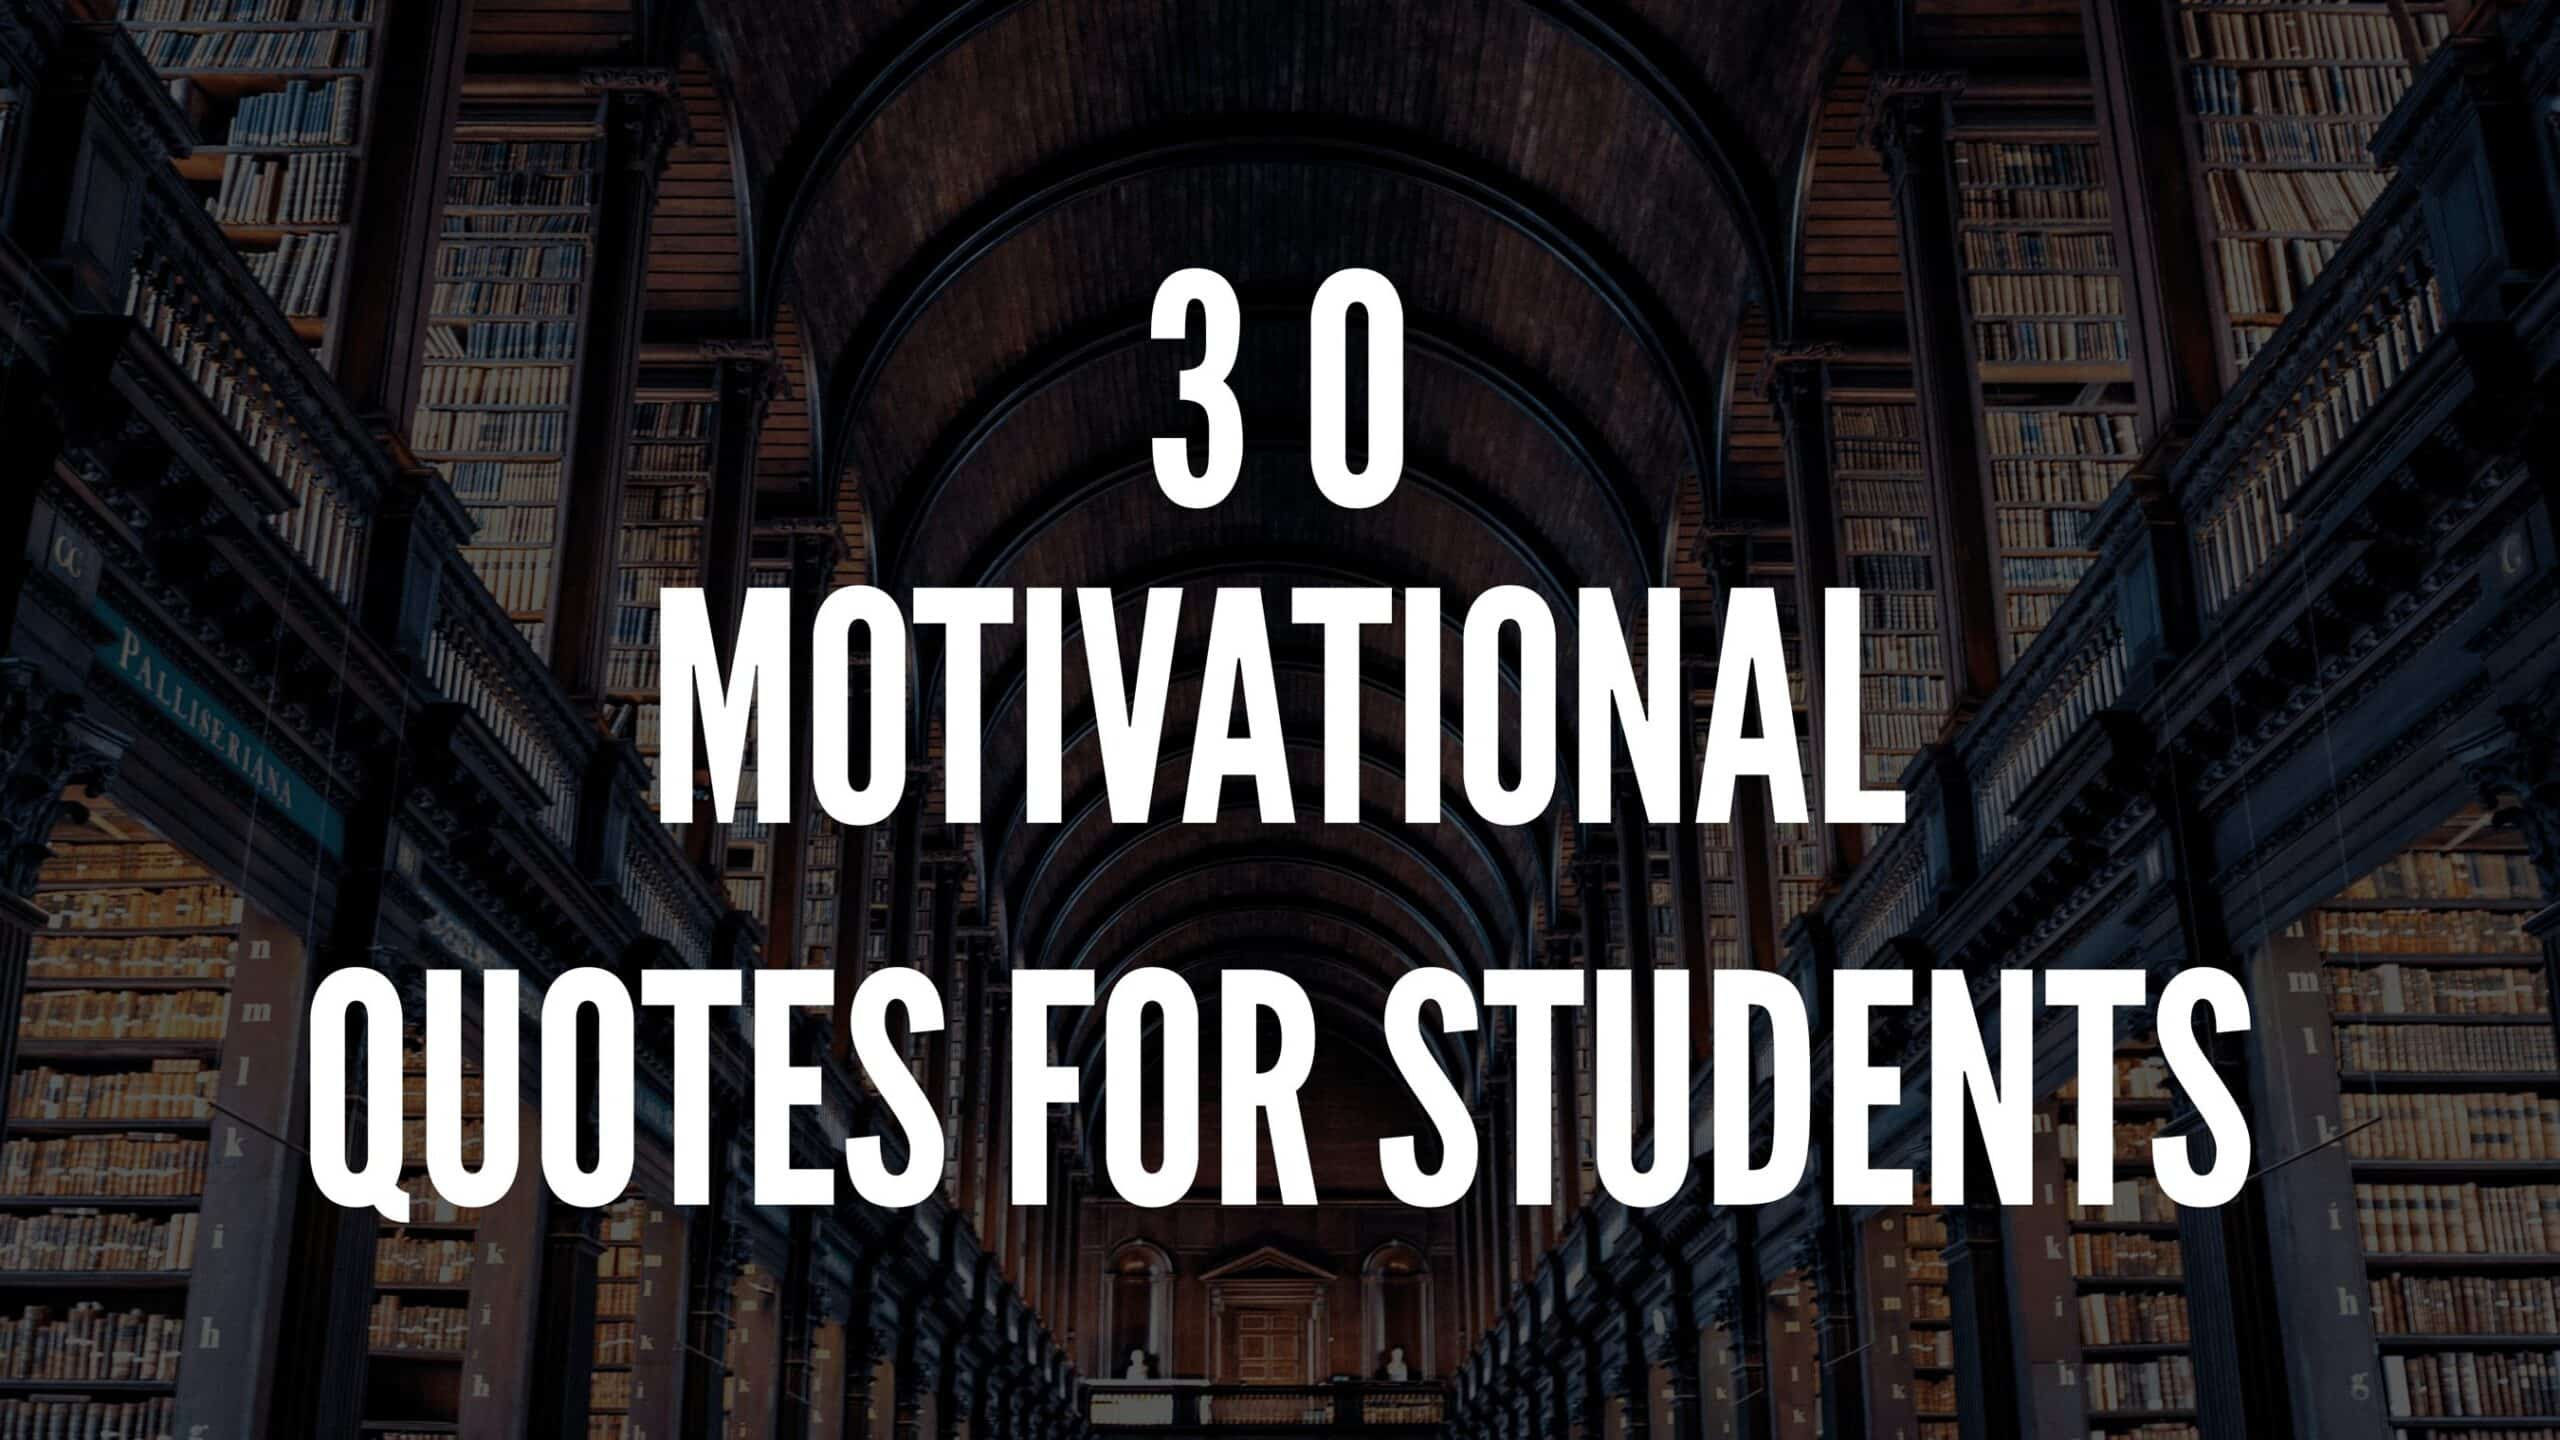 30 Motivational Quotes For Students